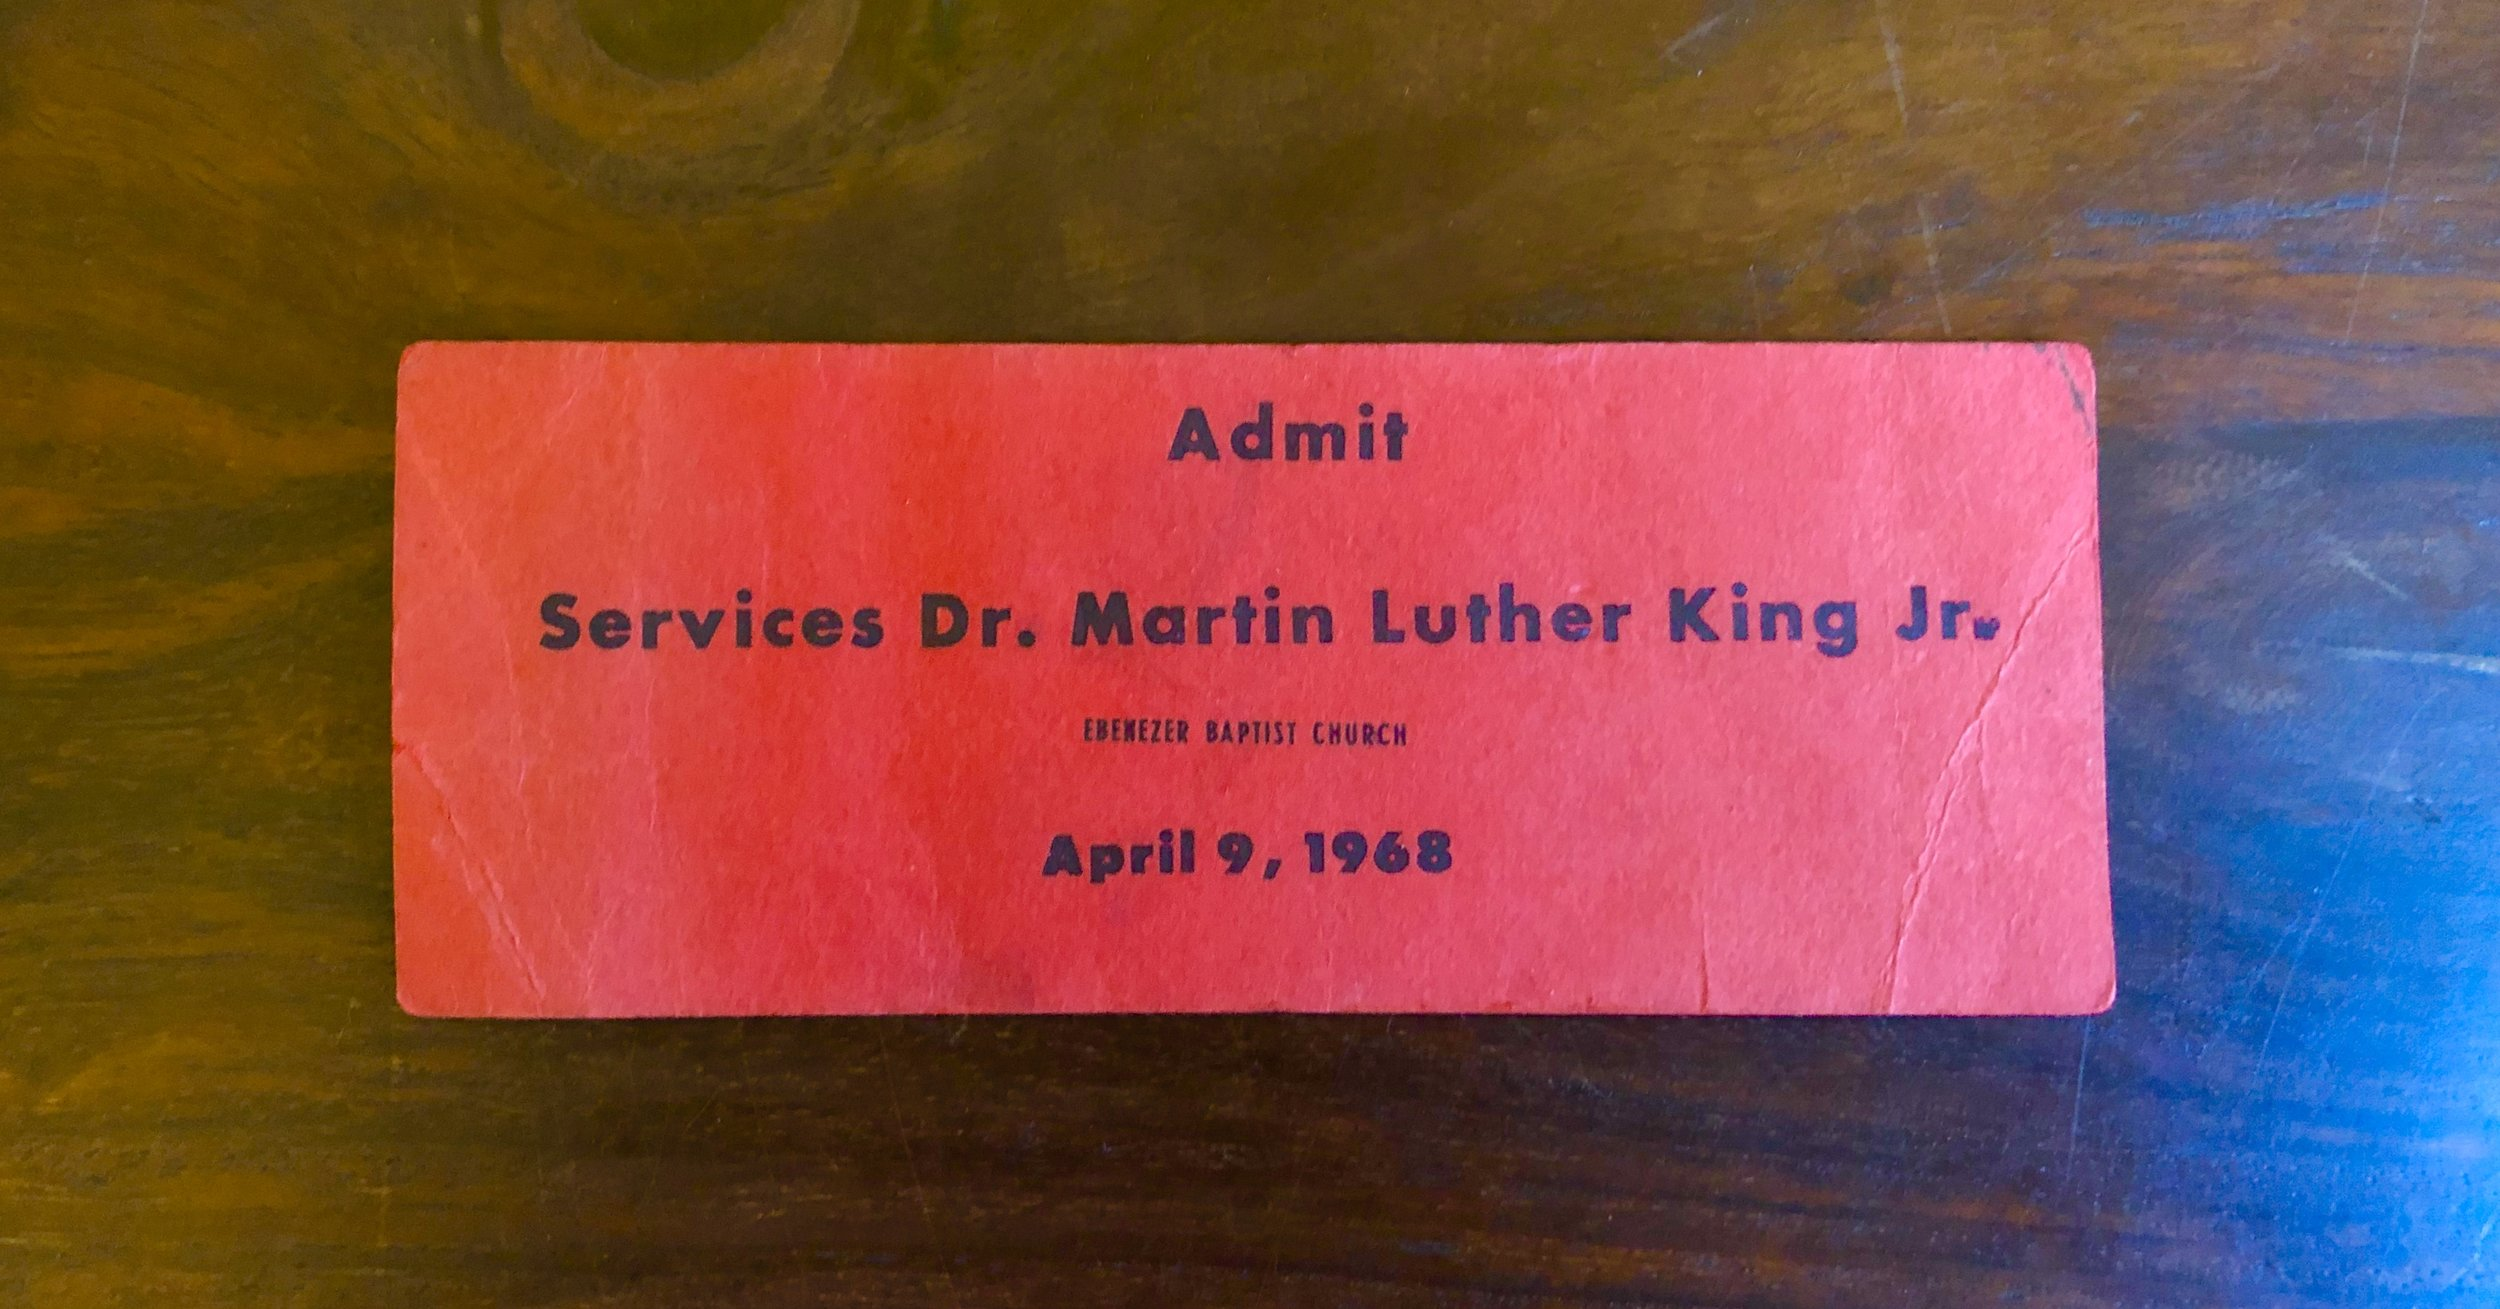 Admit to Funeral Services for Dr Martin Luther King Jr